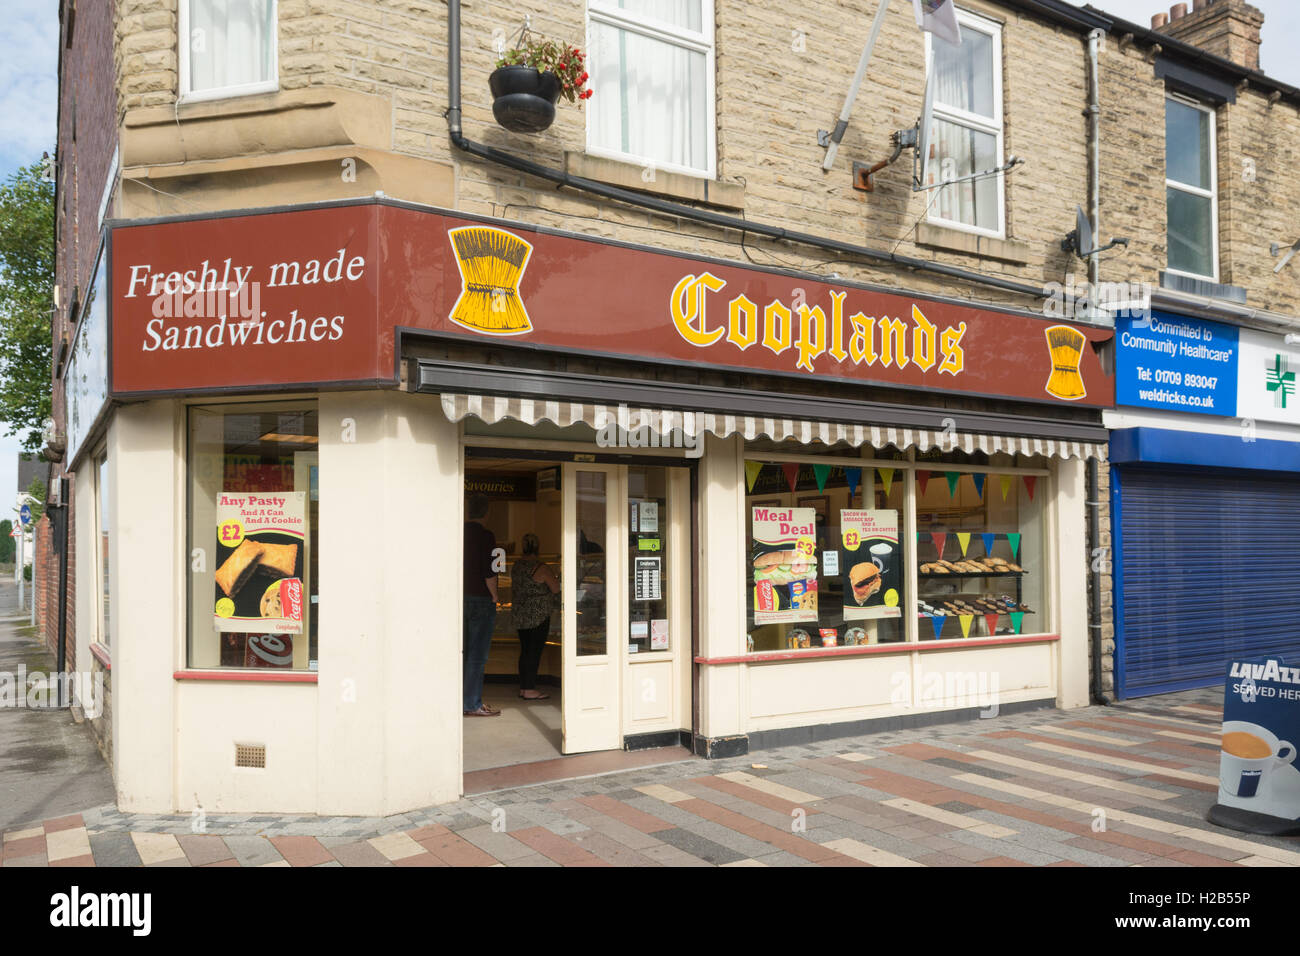 Cooplands bakery and sandwich shop, Goldthorpe, South Yorkshire - Stock Image